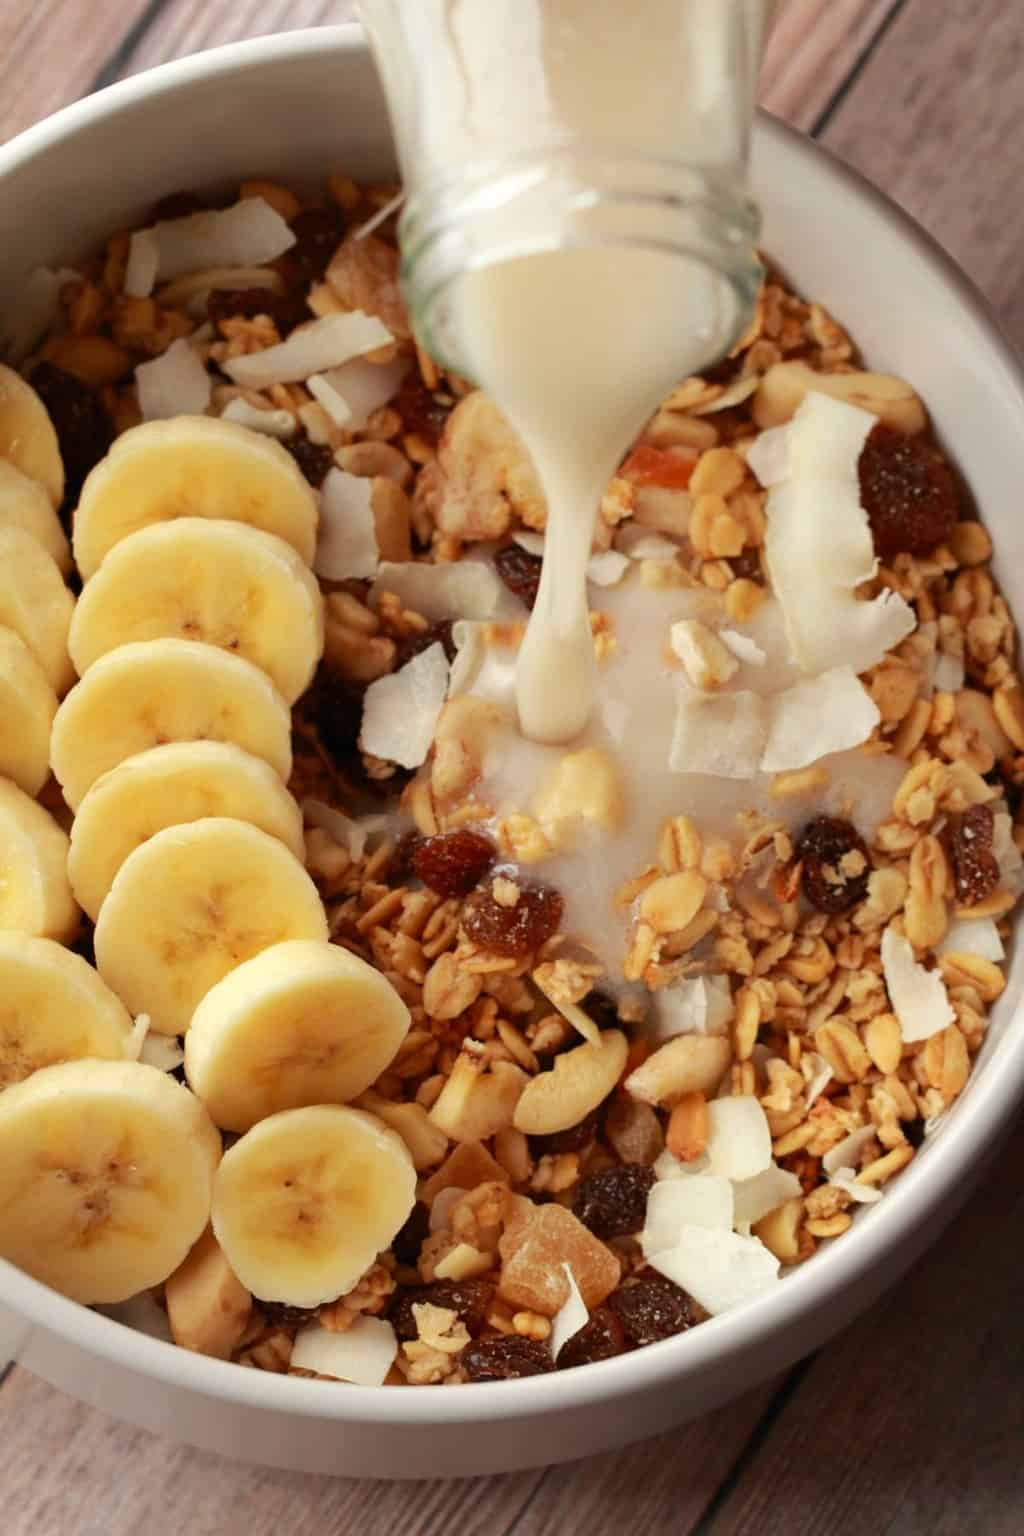 Oat milk pouring from a glass bottle into a white bowl filled with granola and sliced banana.